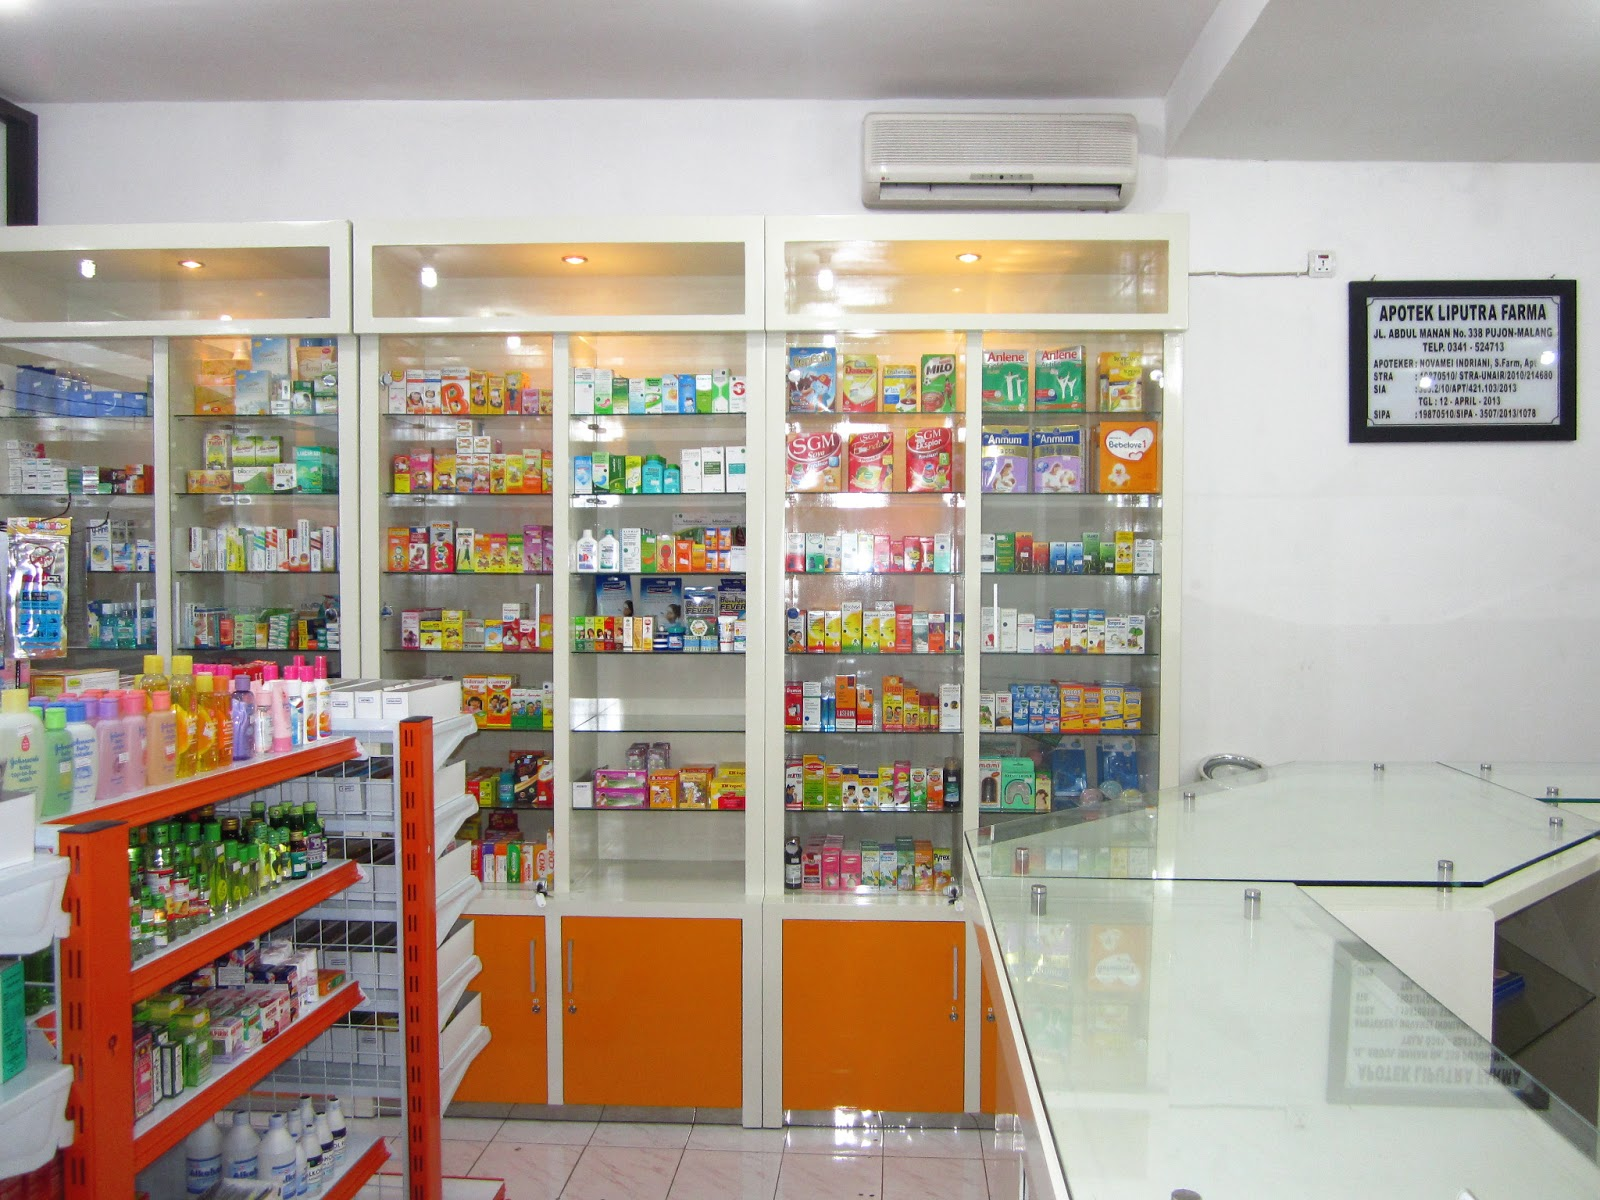 farma apotheek